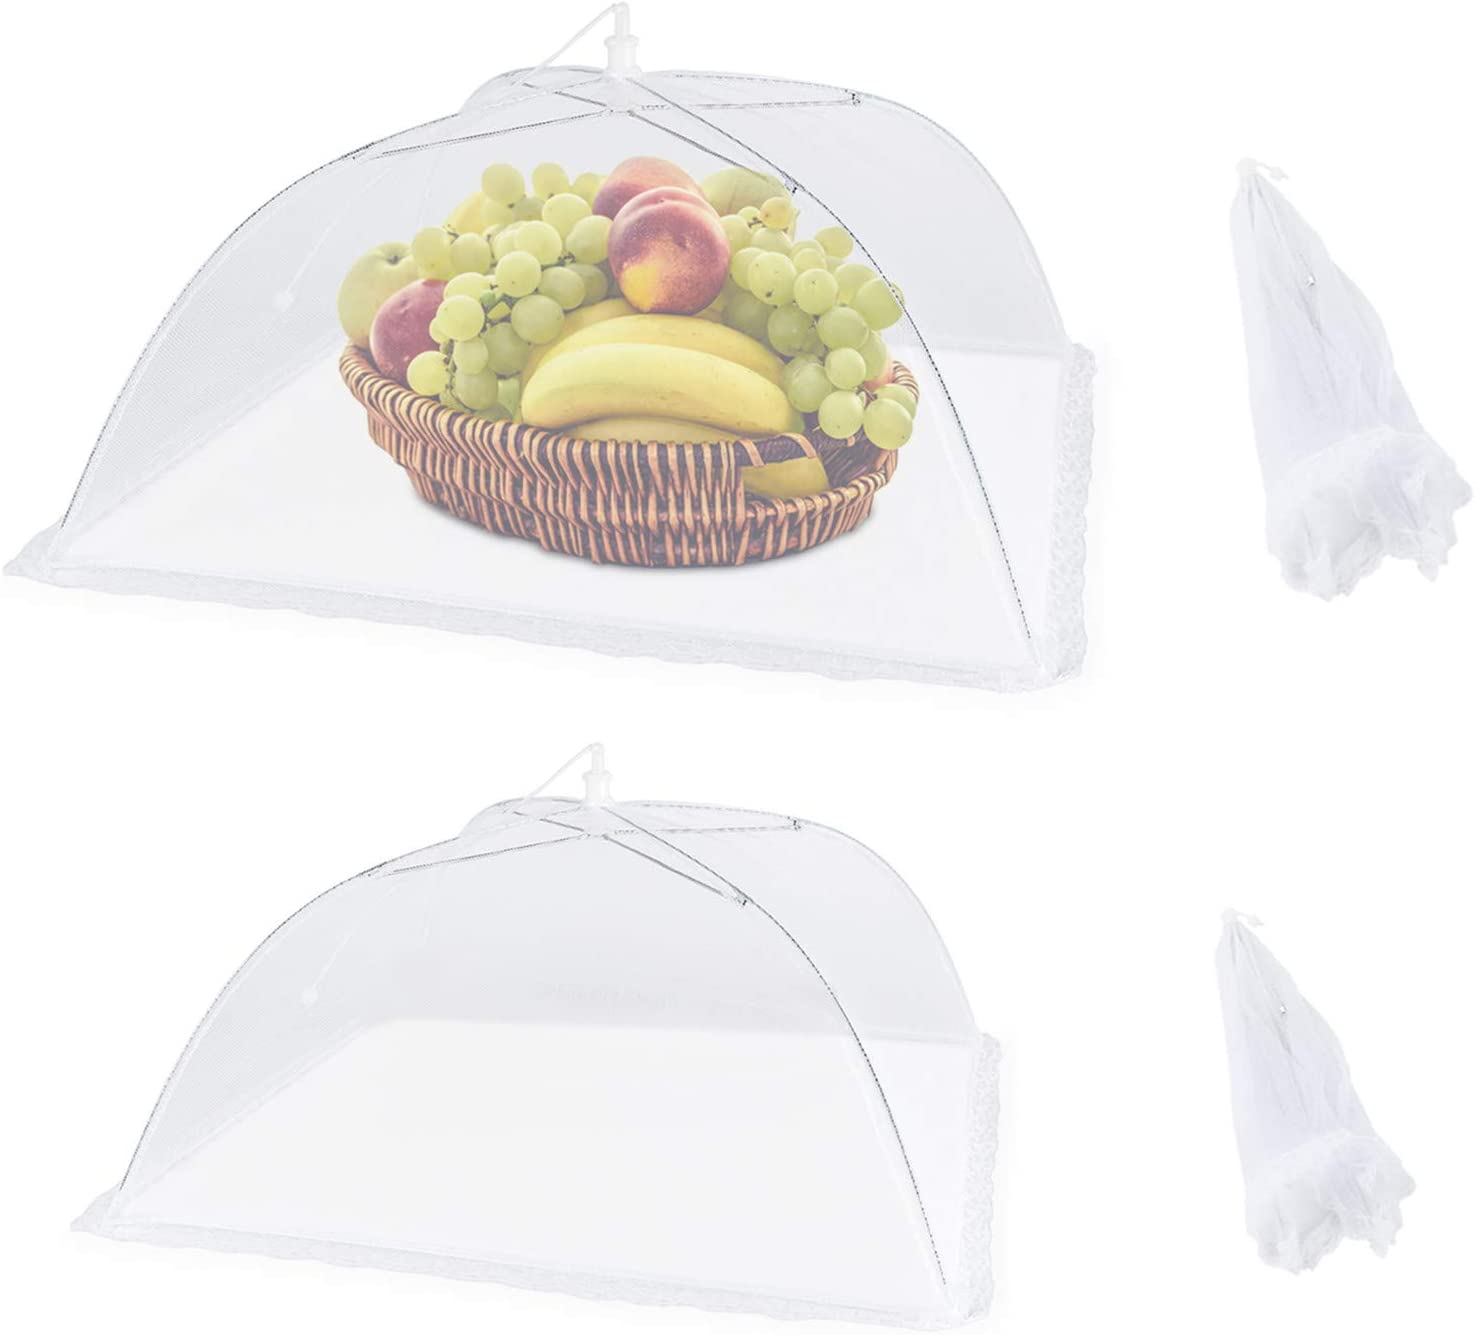 Mesh Food Covers for Outdoors - 7 pack Pop-up Outdoor Food Covers for Picnics, Foldable Large Outdoor Food Insect-proof Net Cover with Lace Edge, Perfect for Picnic, BBQ, Party (17